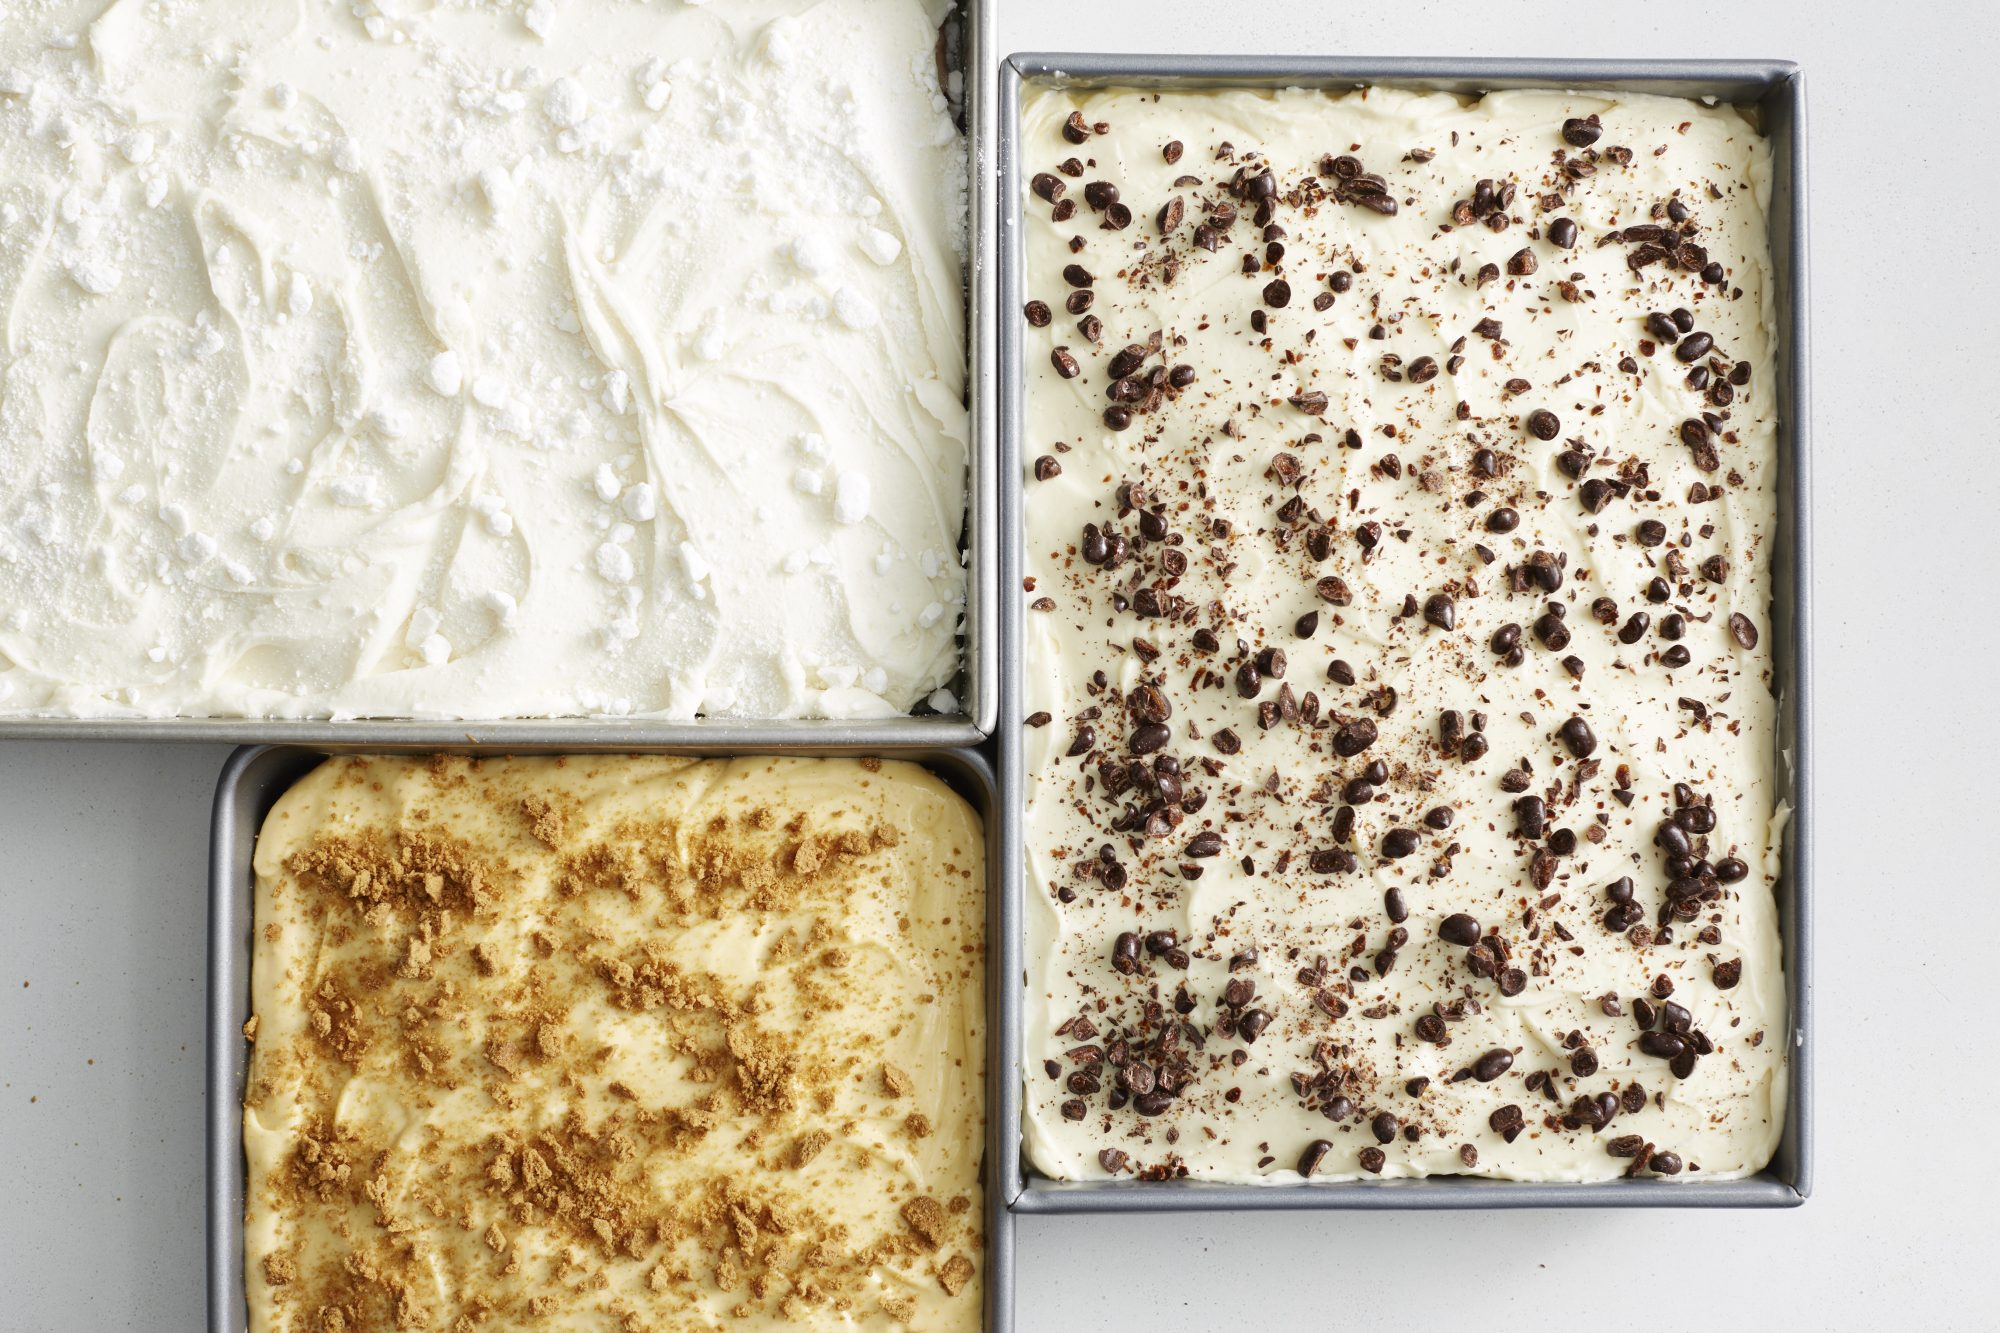 mr-holiday-poke-cakes-frosted-image